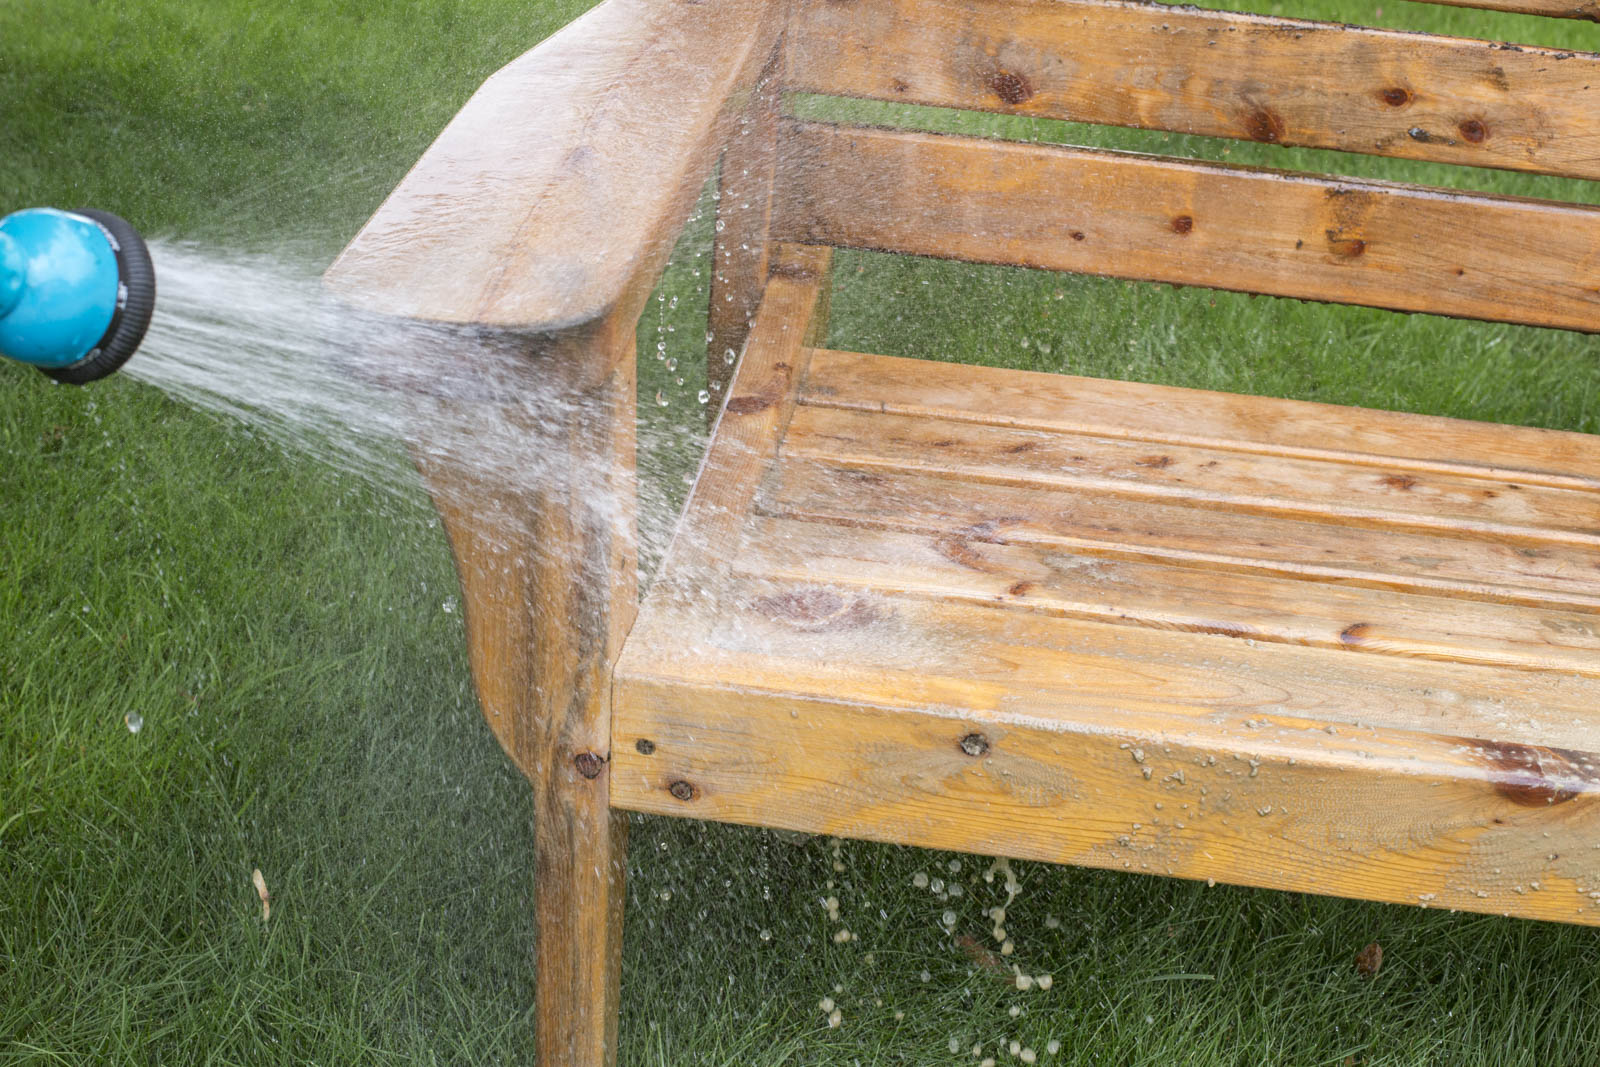 rinse bench with hose